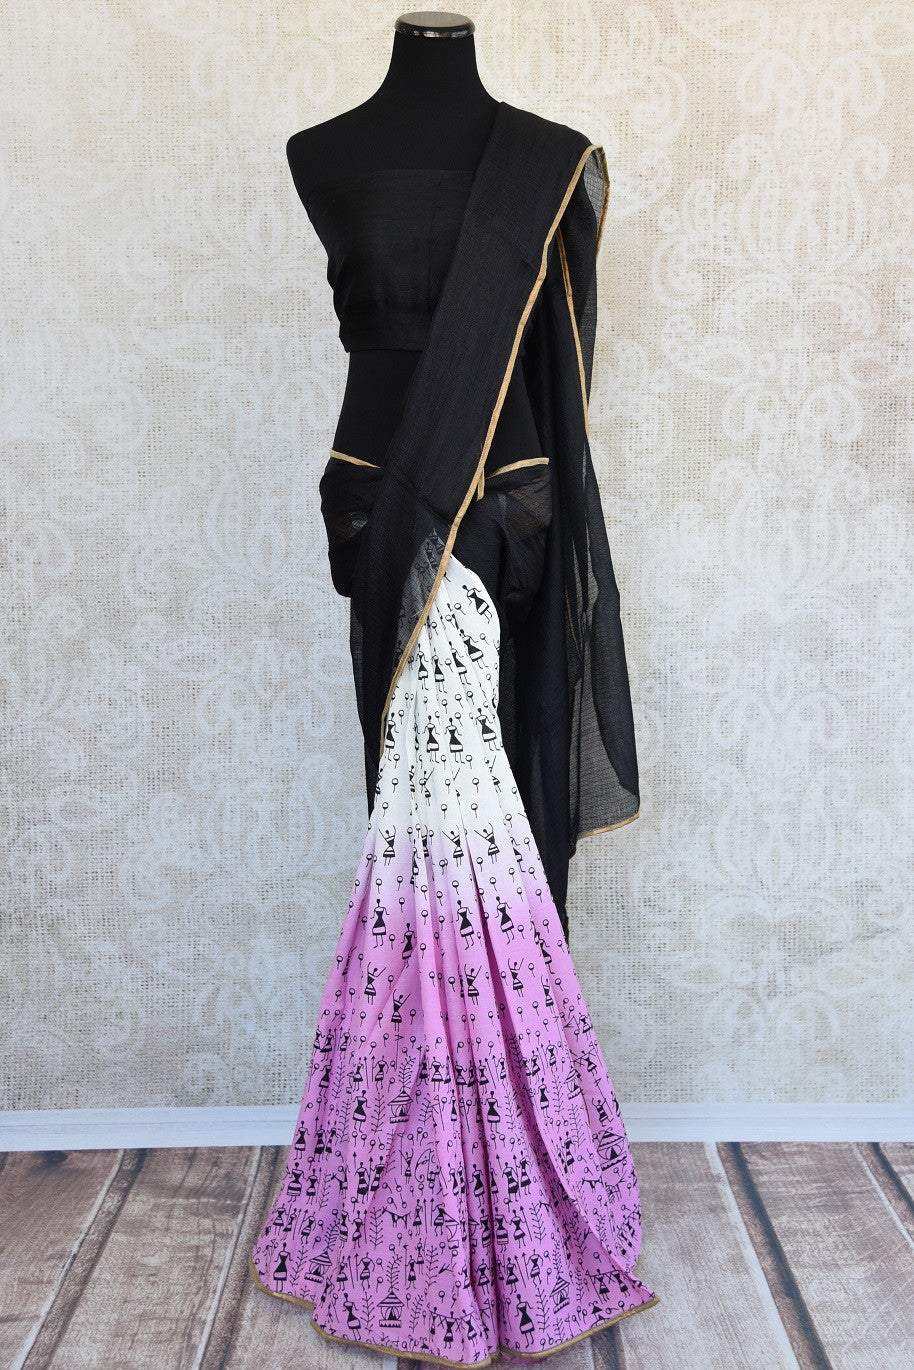 90b045 Designer pure cotton saree in wine Pink and white colours. The half n half printed saree comes with kota check black pallu and is available at our online ethnic clothing store in USA - Pure Elegance.